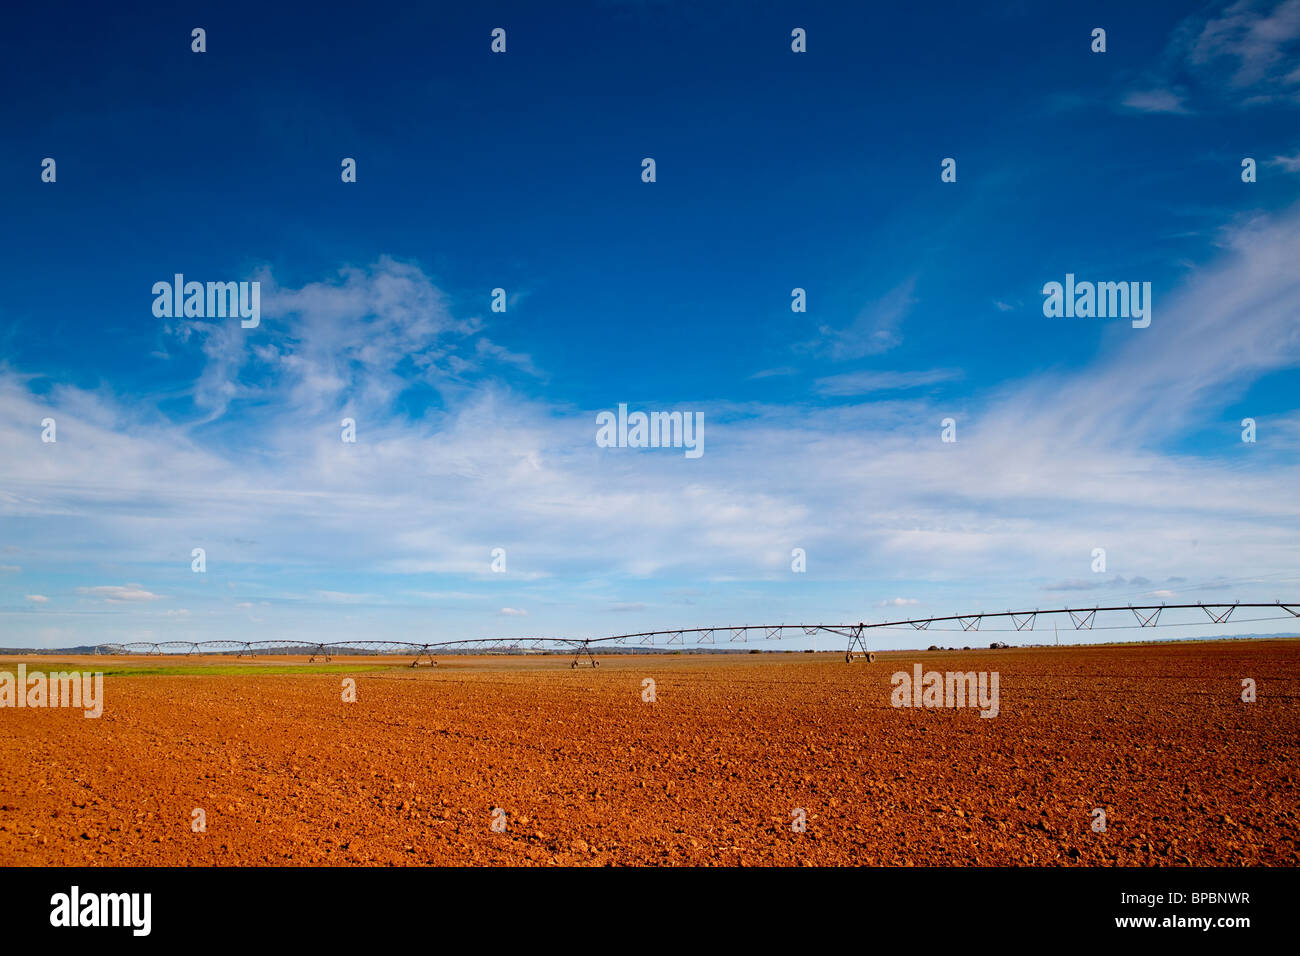 Agriculture farm being irrigated by industrials mechanisms - Stock Image